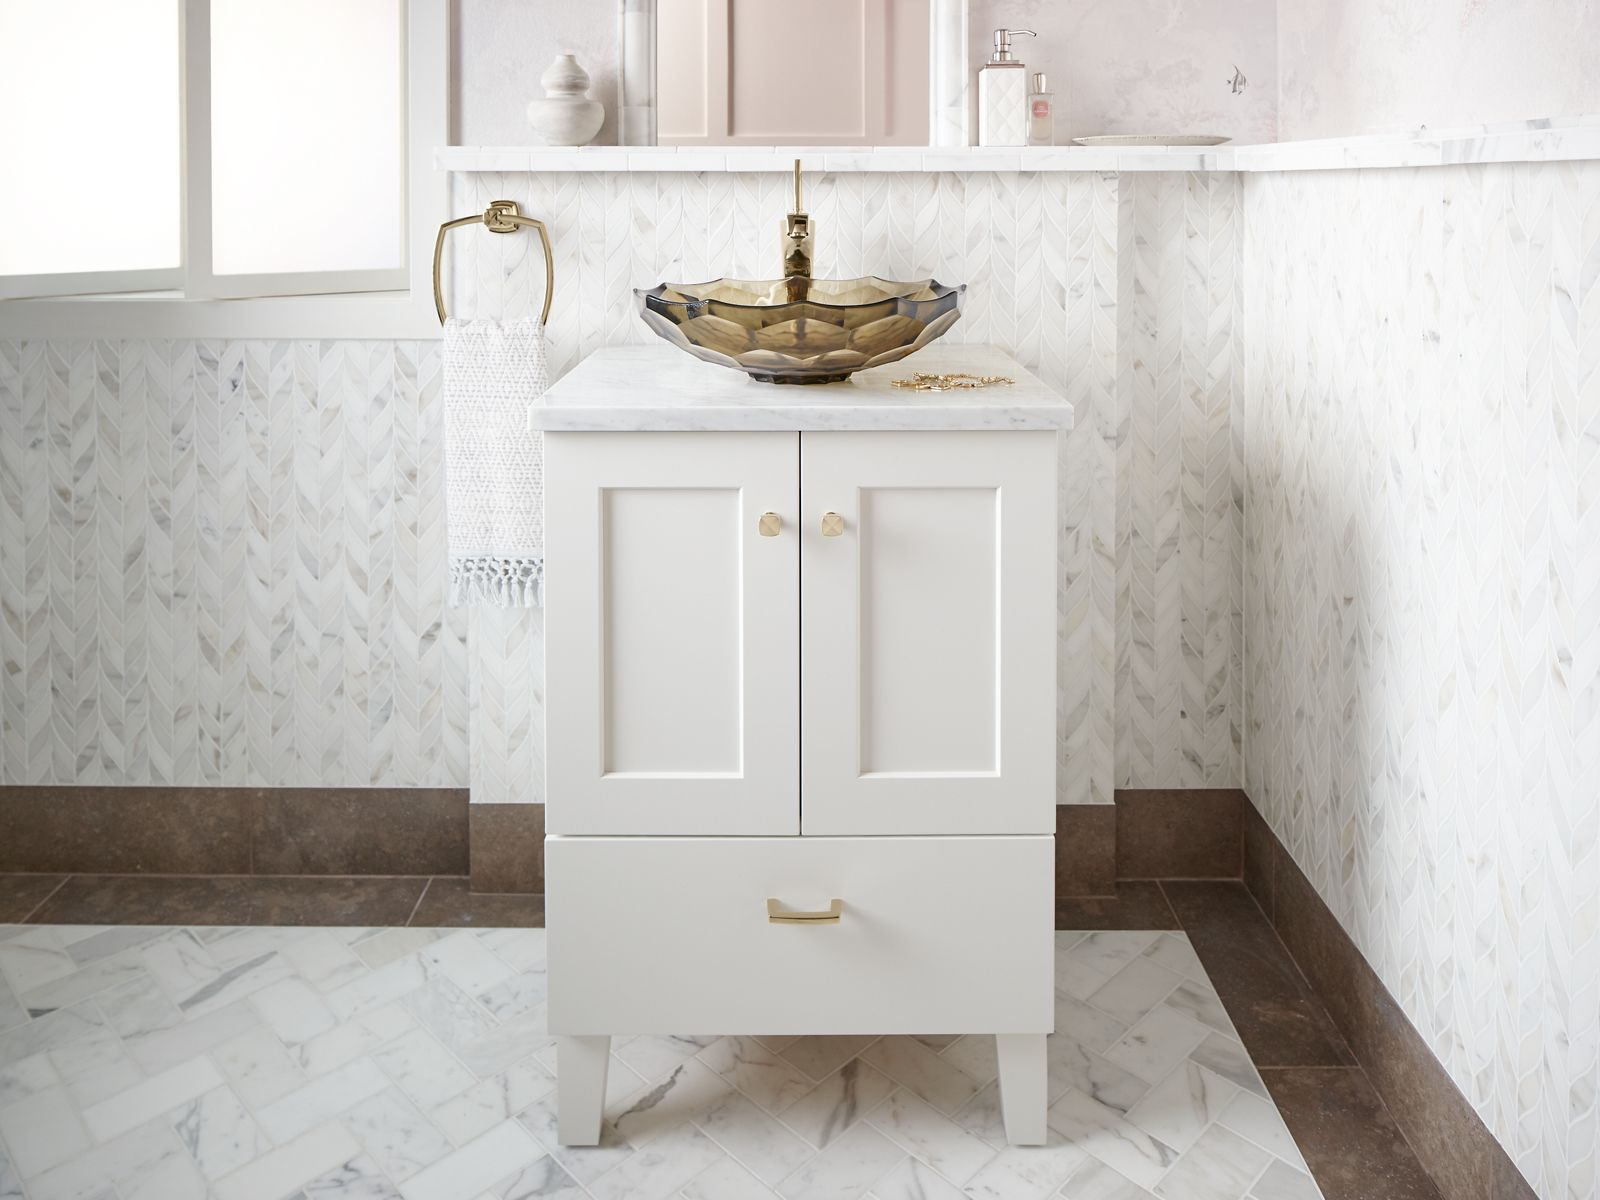 Fresh Small vanities are ideal for tiny spaces where everything needs to fit to her like a puzzle in order to maximize the space Even small vanities offer HD - Awesome stand alone bathroom cabinets